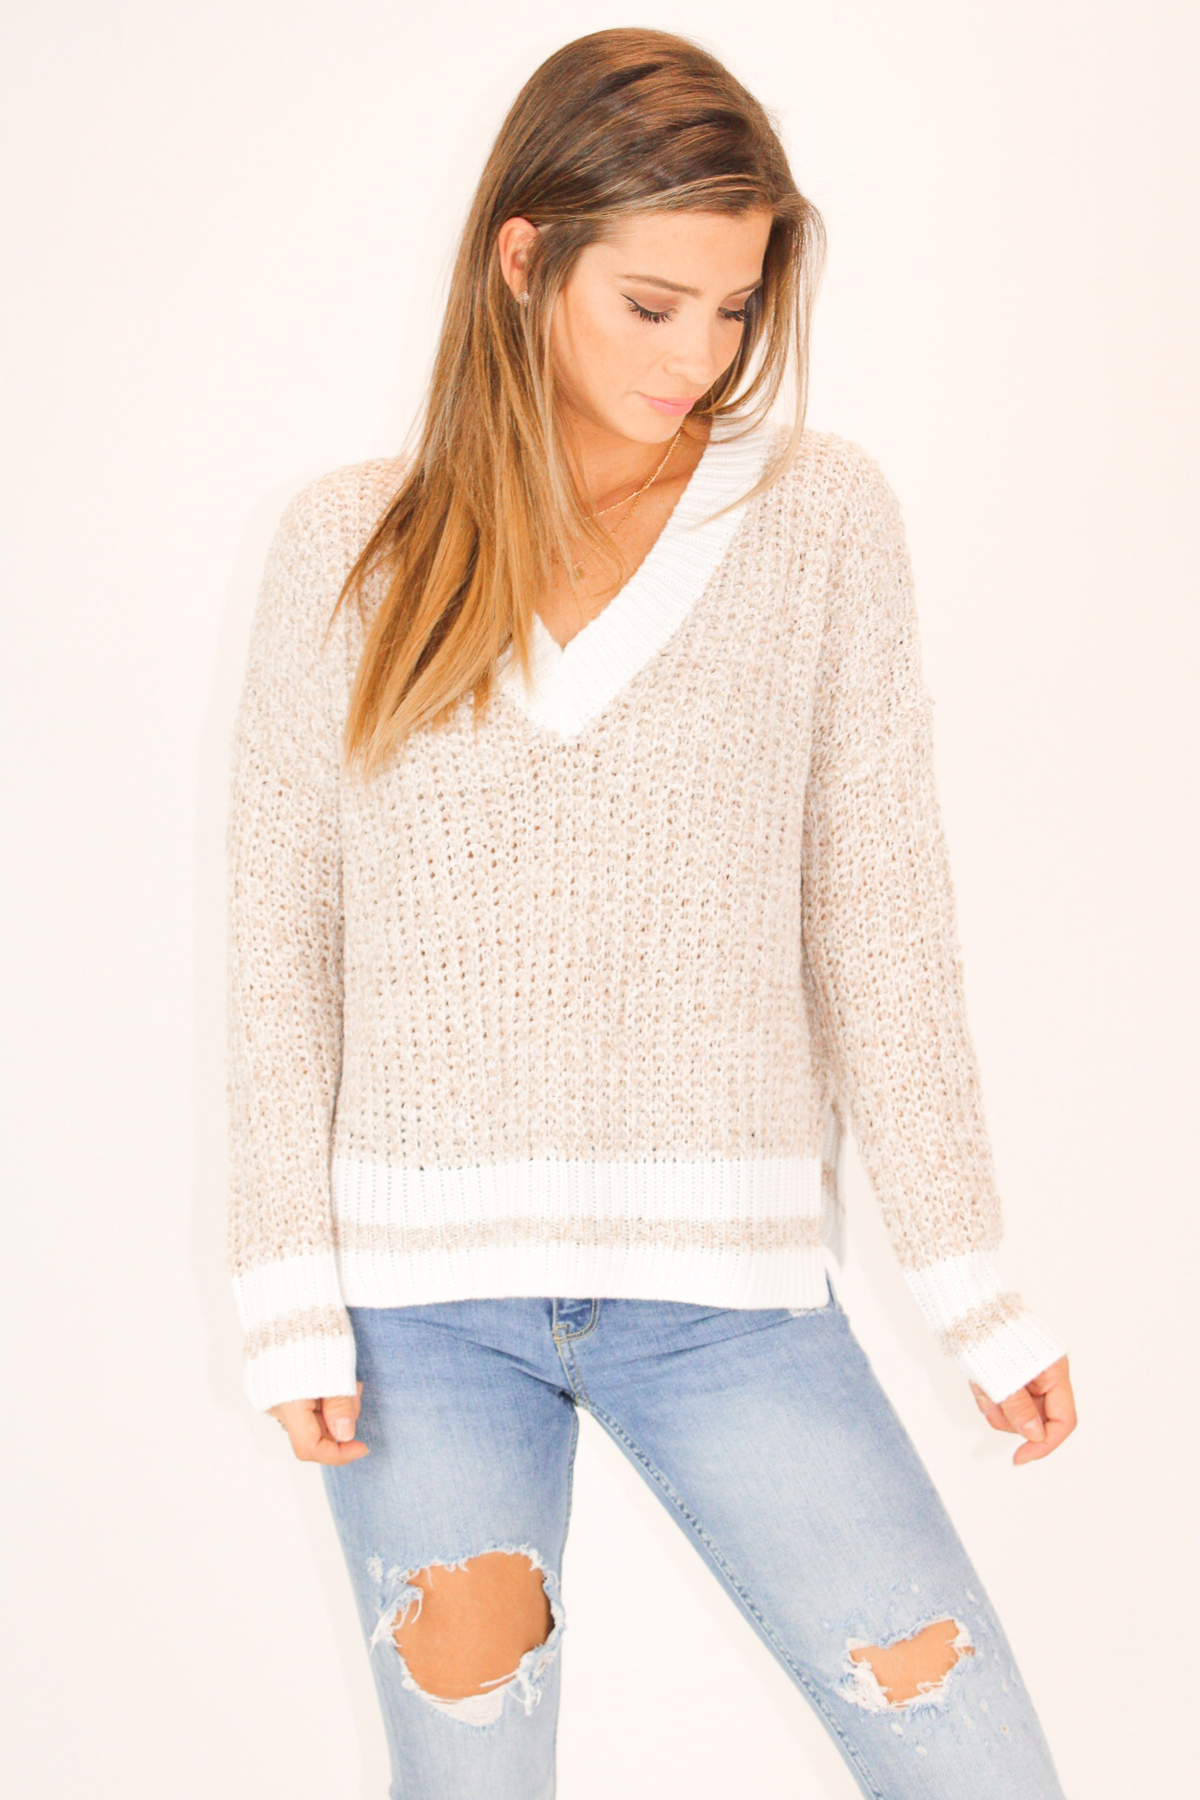 OATMEAL KNIT TWO TONE SWEATER